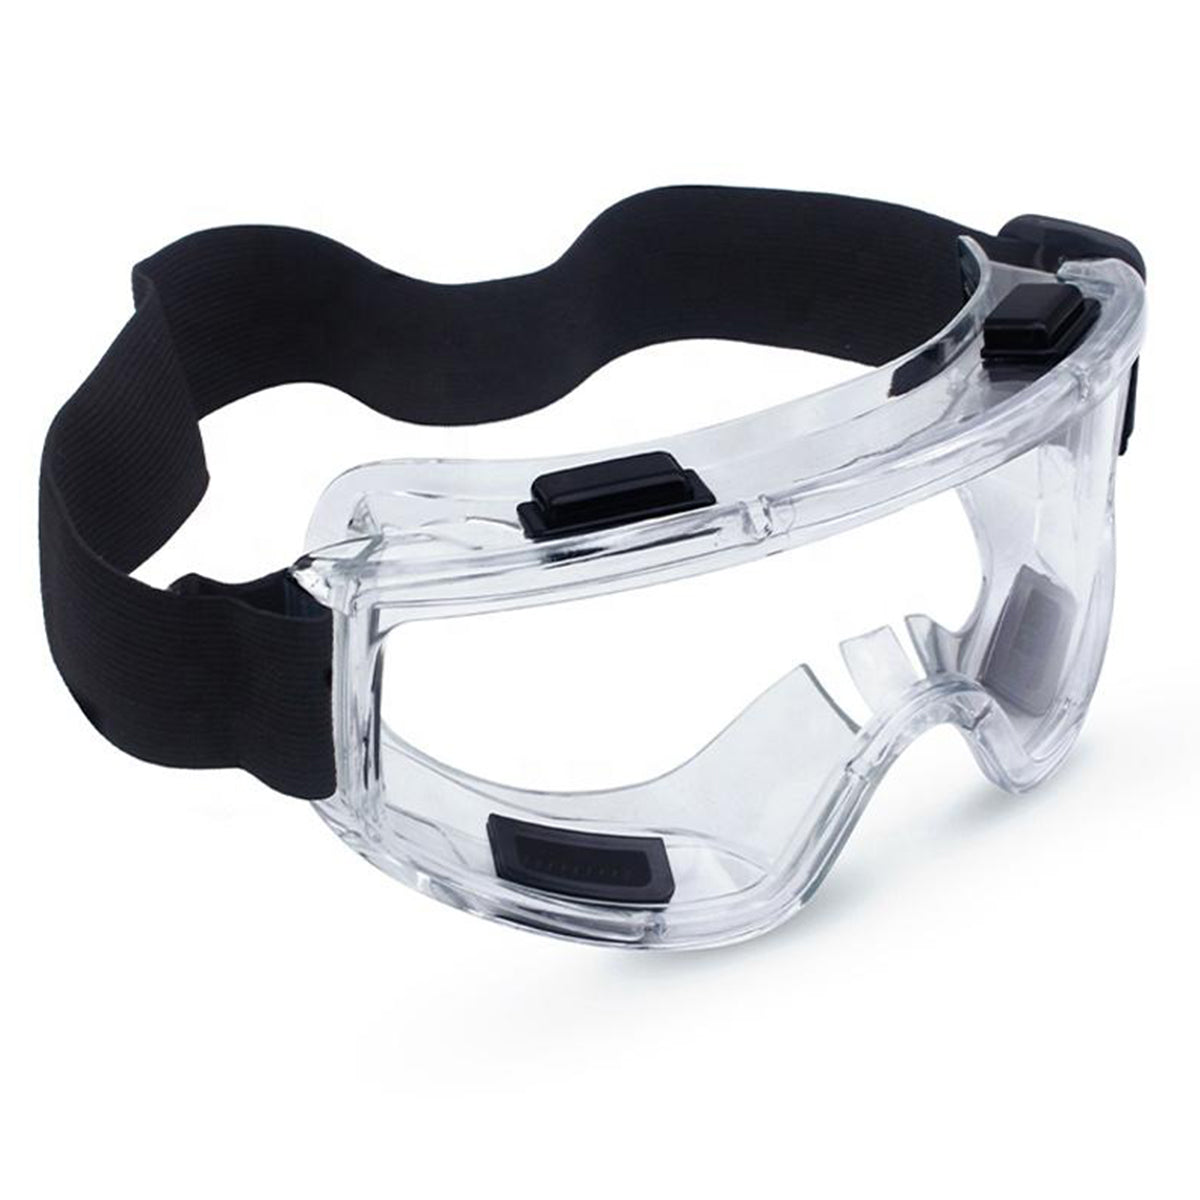 Left side profile product image of Retsing ski goggle style-safety goggles.